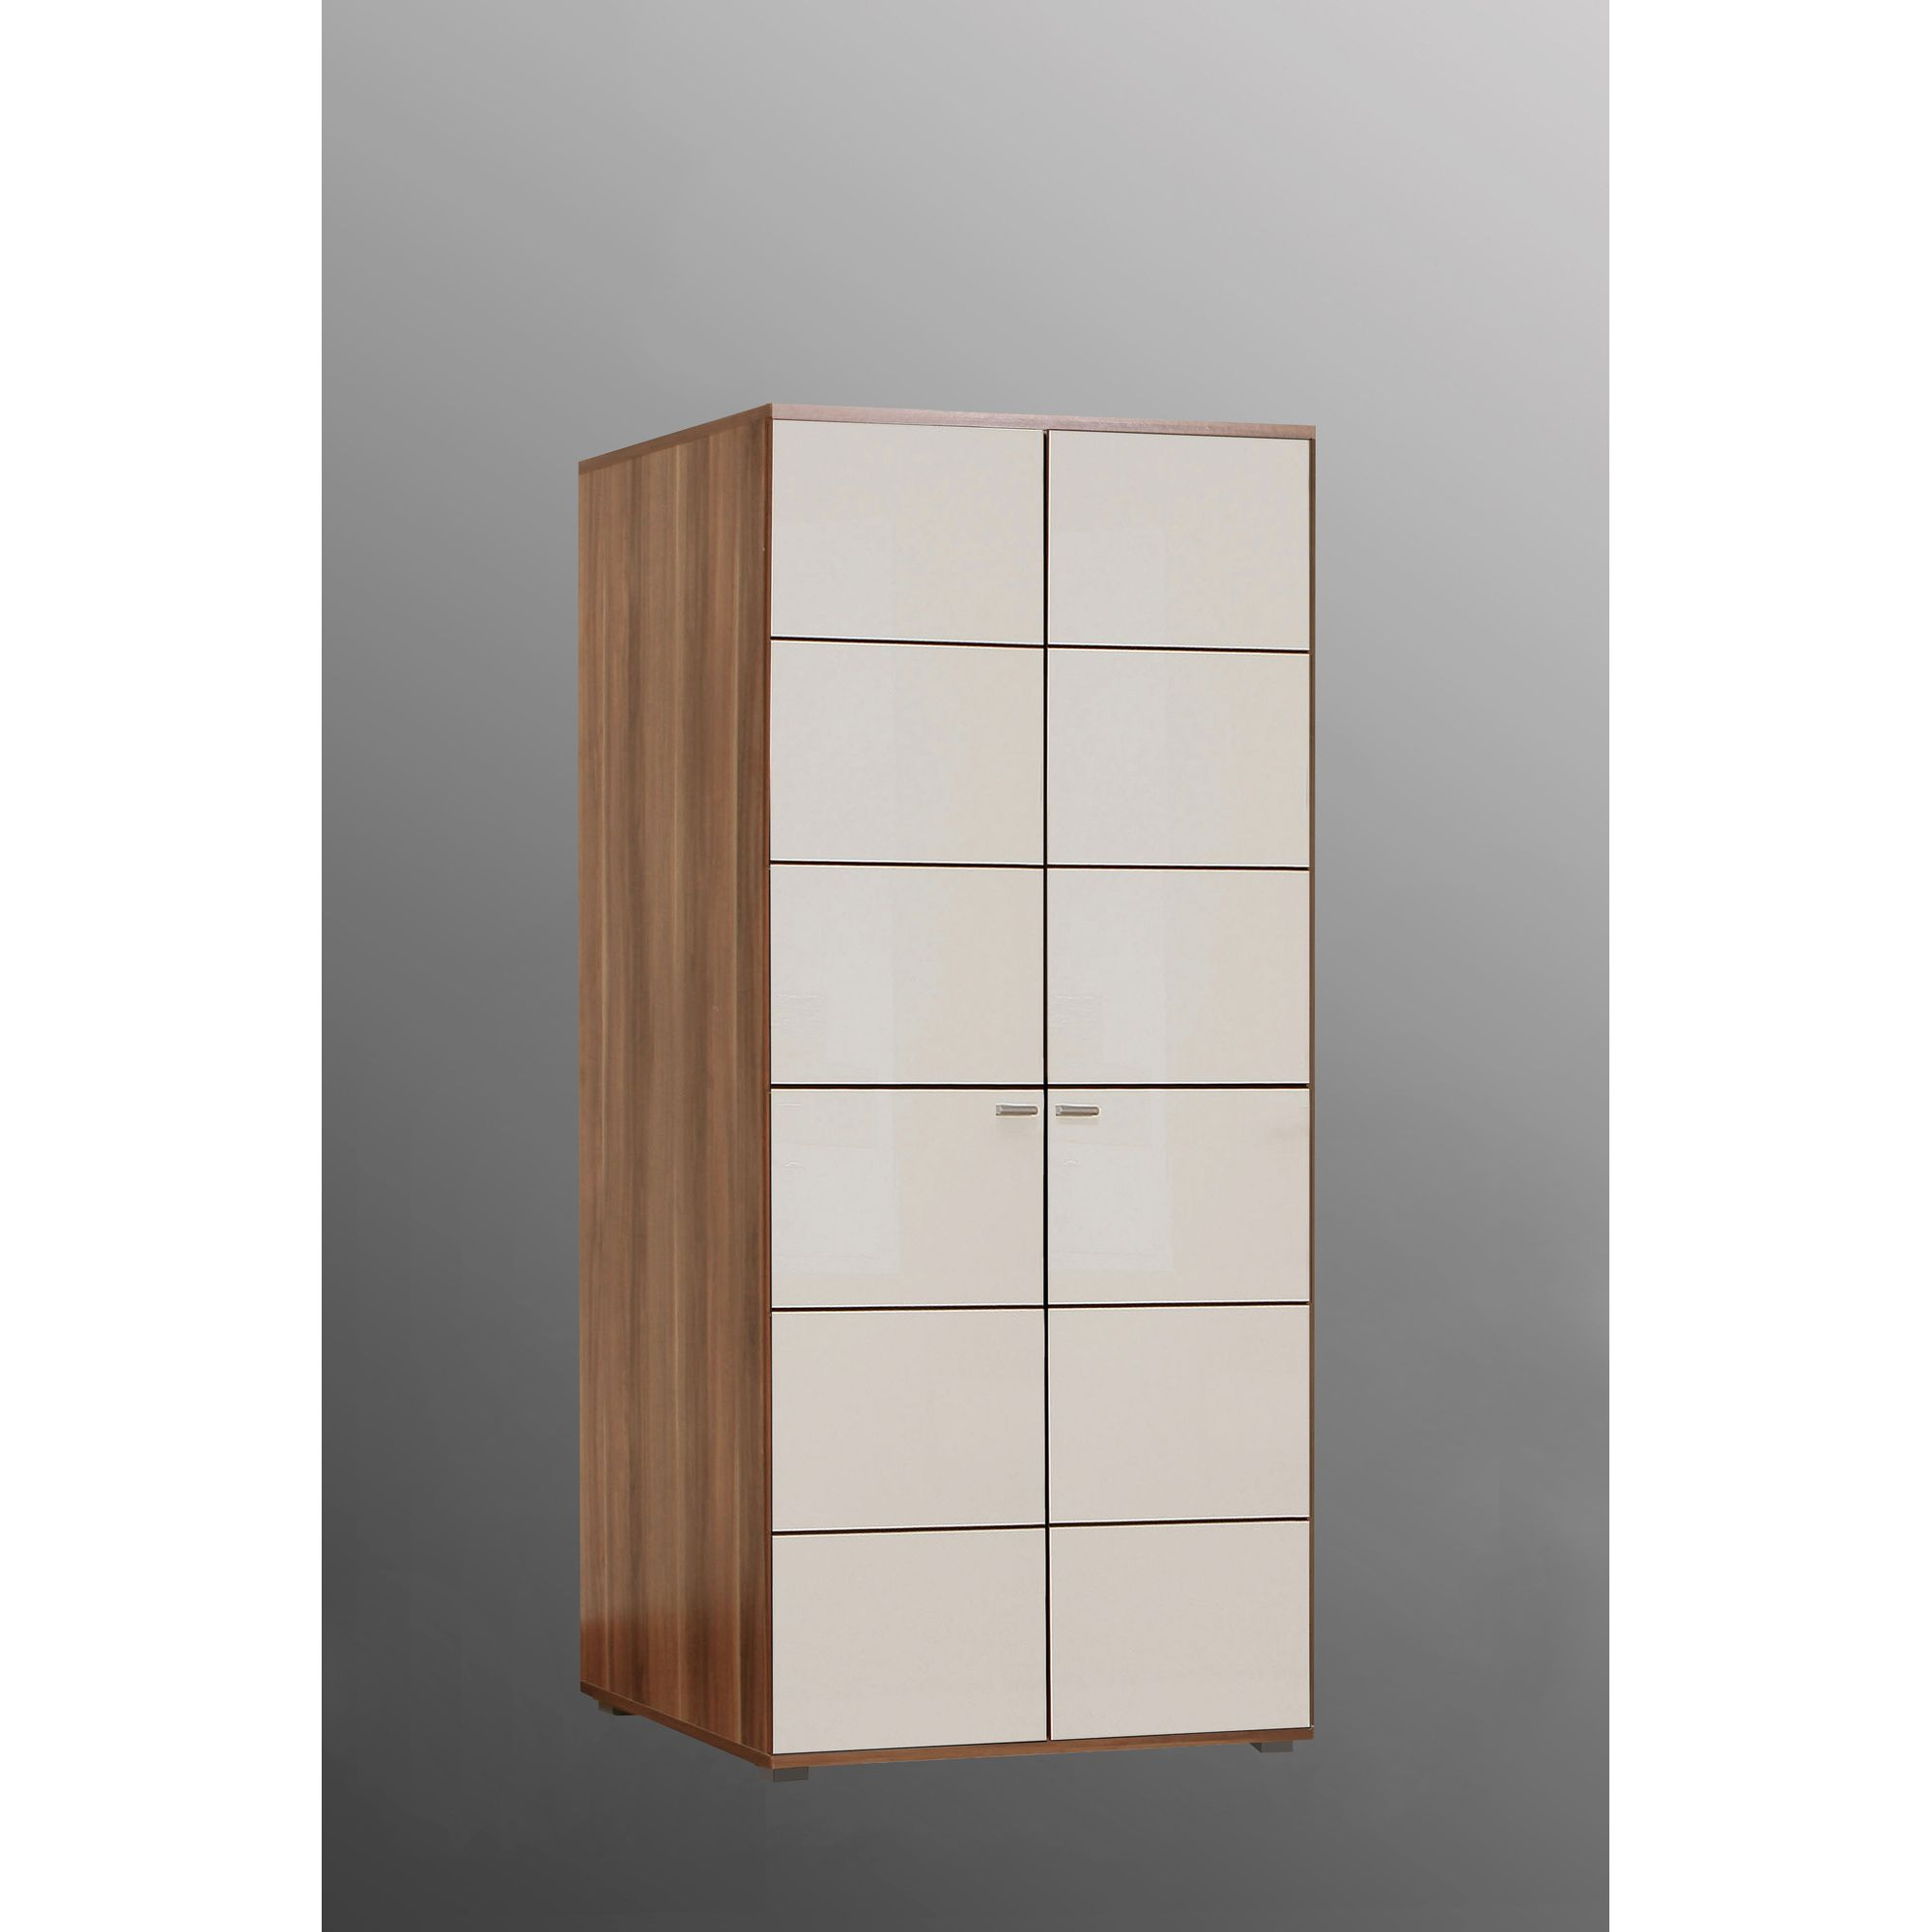 Ideal Furniture Anemone Two Door Wardrobe - Walnut White Gloss at Tesco Direct